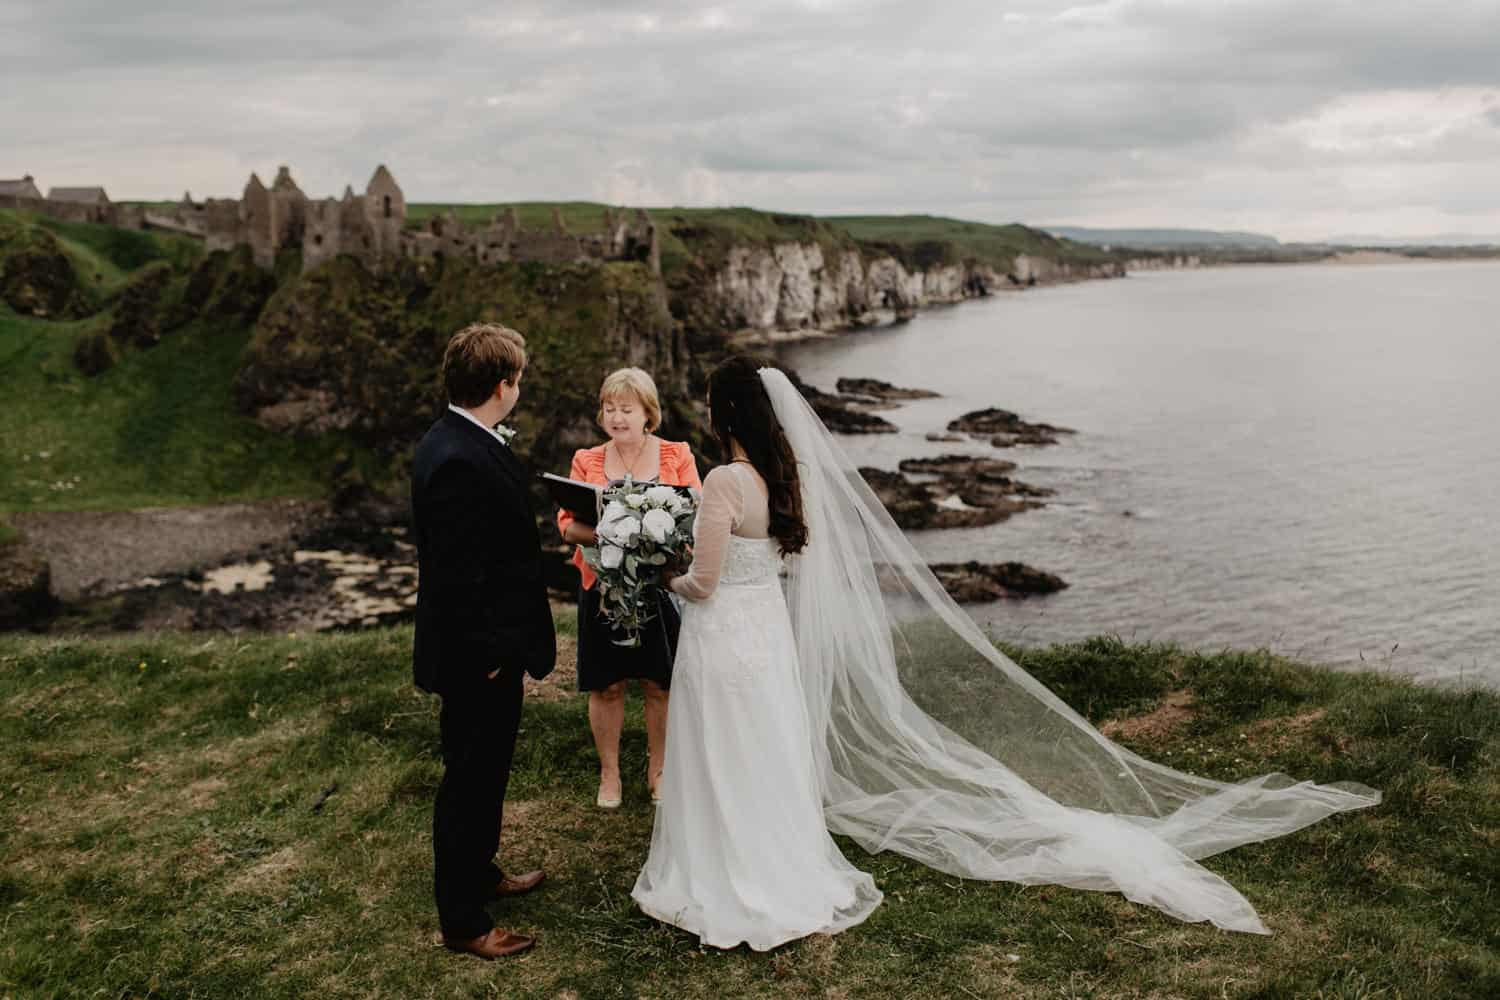 Ireland Elopement Vendor Guide 2020